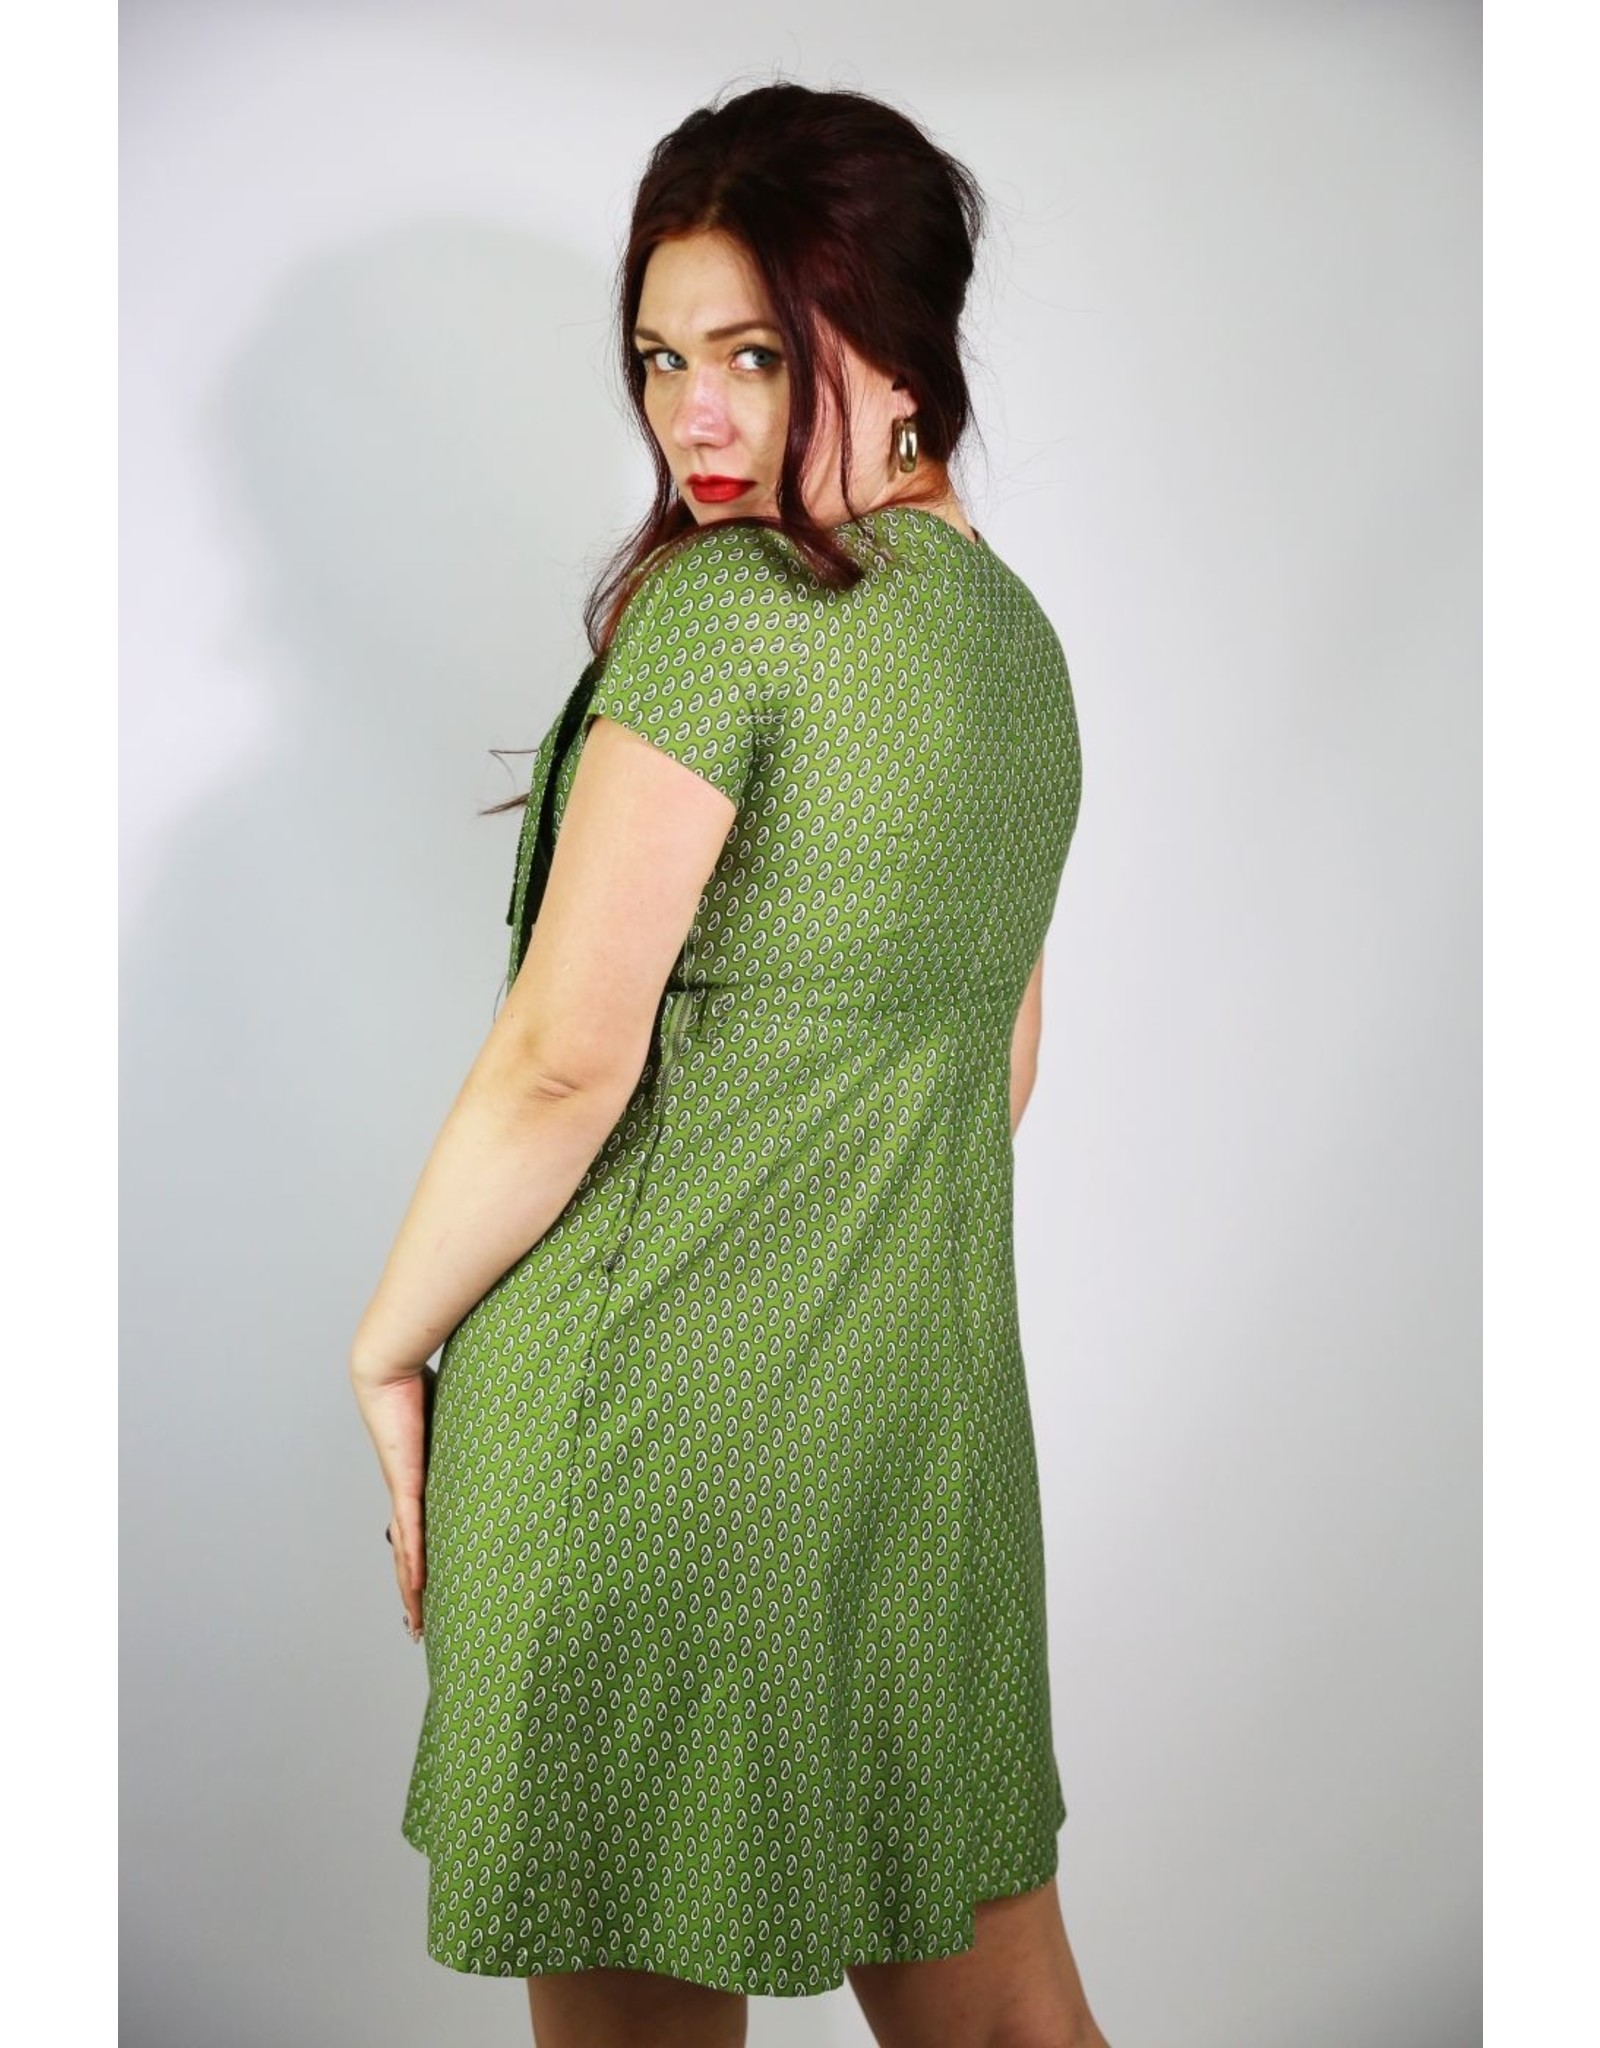 1940's Green Plus Size Day Dress